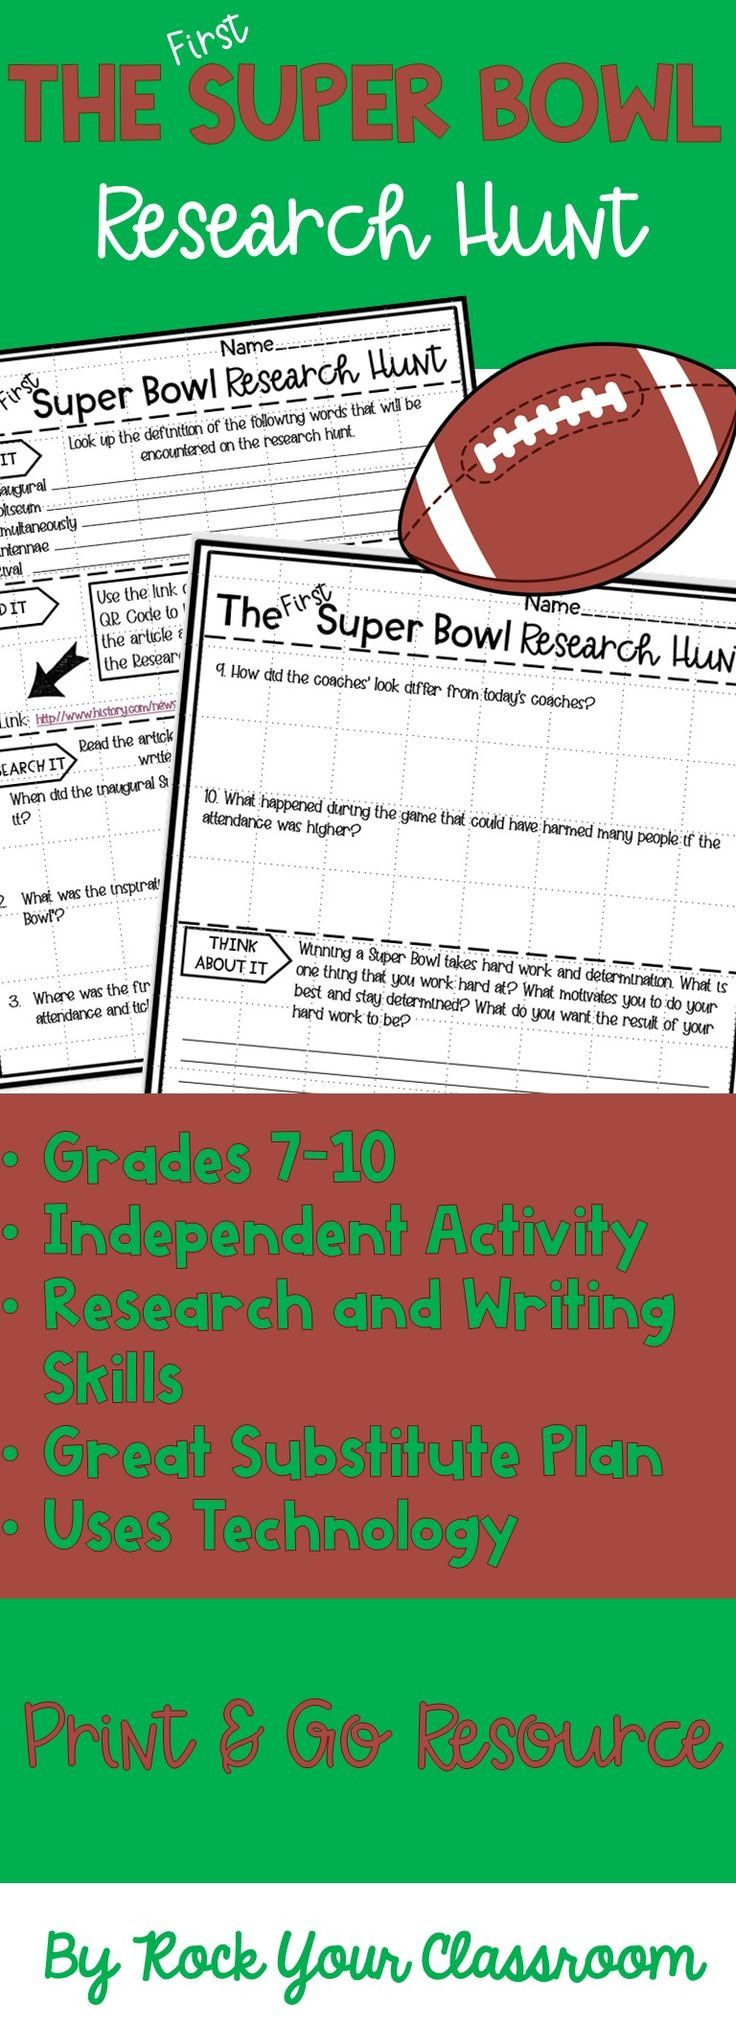 Super Bowl Football Reading, Writing, Research Activity. This engaging research scavenger hunt includes vocabulary work, a non-fiction reading passage, and a writing prompt. Students will define vocabulary words on the topic, read a non-fiction article online, answer text-dependent questions, and write a response to a topic.